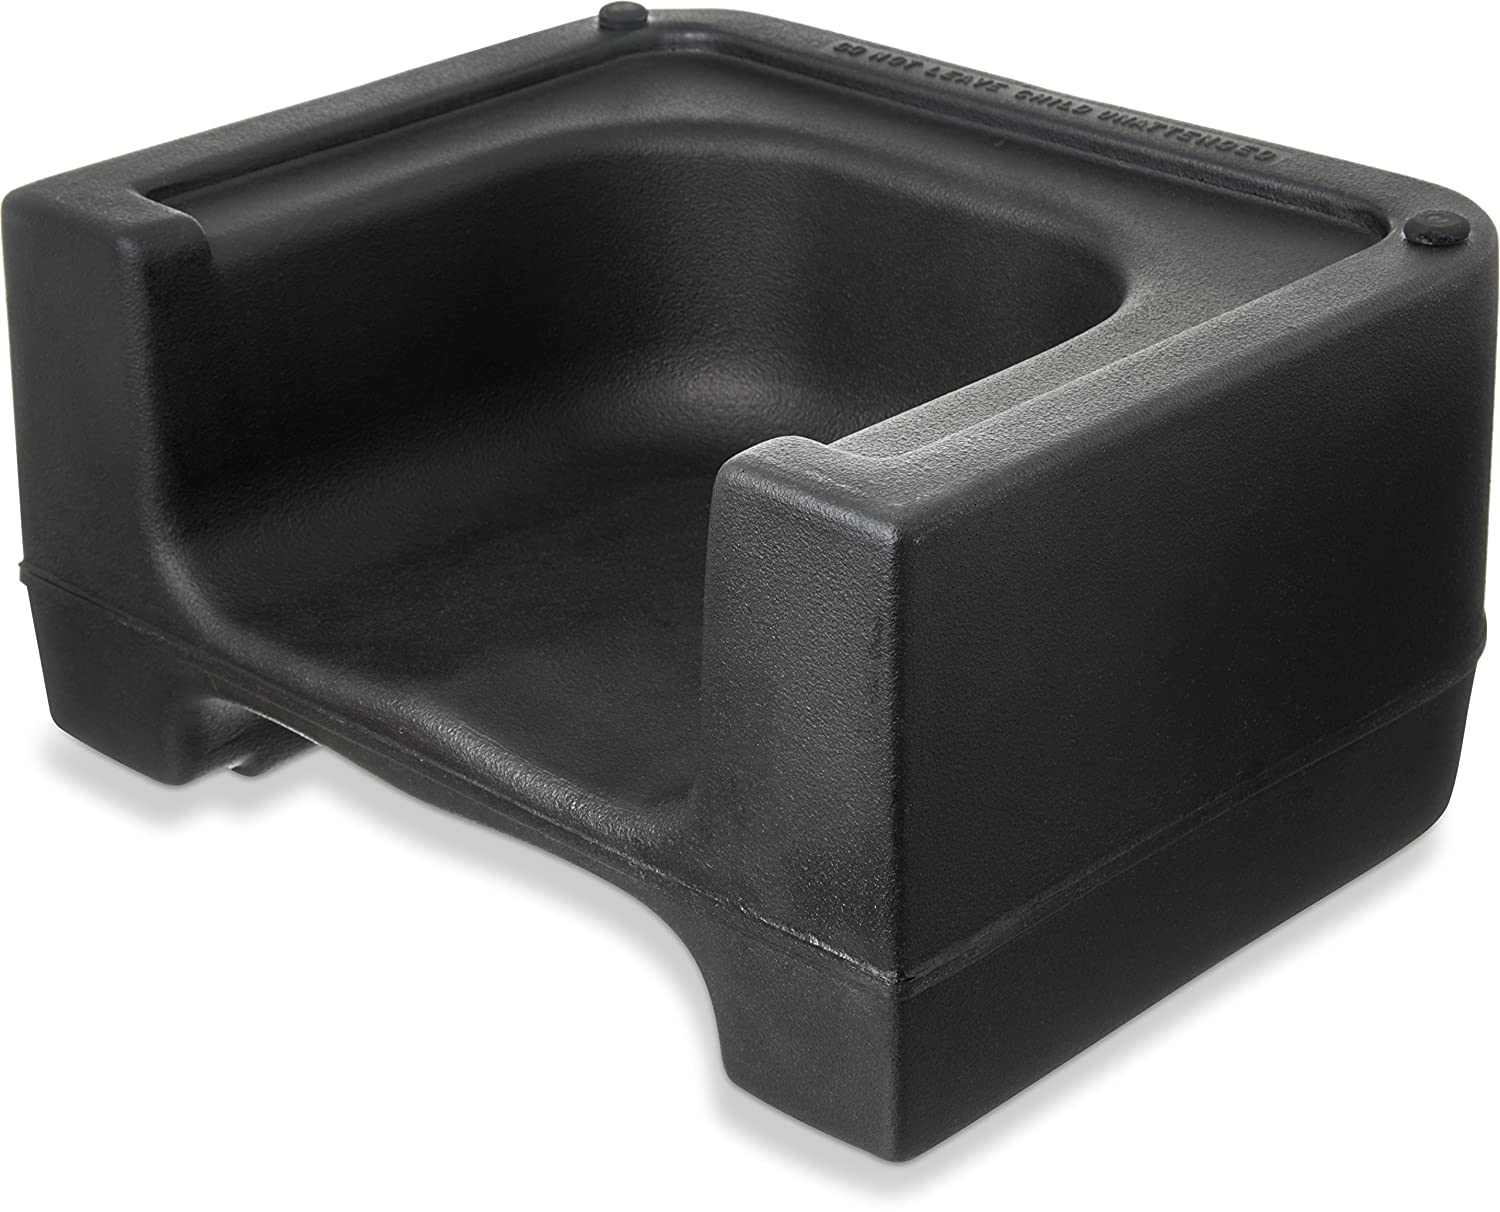 Image of Carlisle 711003 Polyethylene Extra Strong Booster Seat, 8' x 12.5' x 15.5', Black (Case of 4) Baby